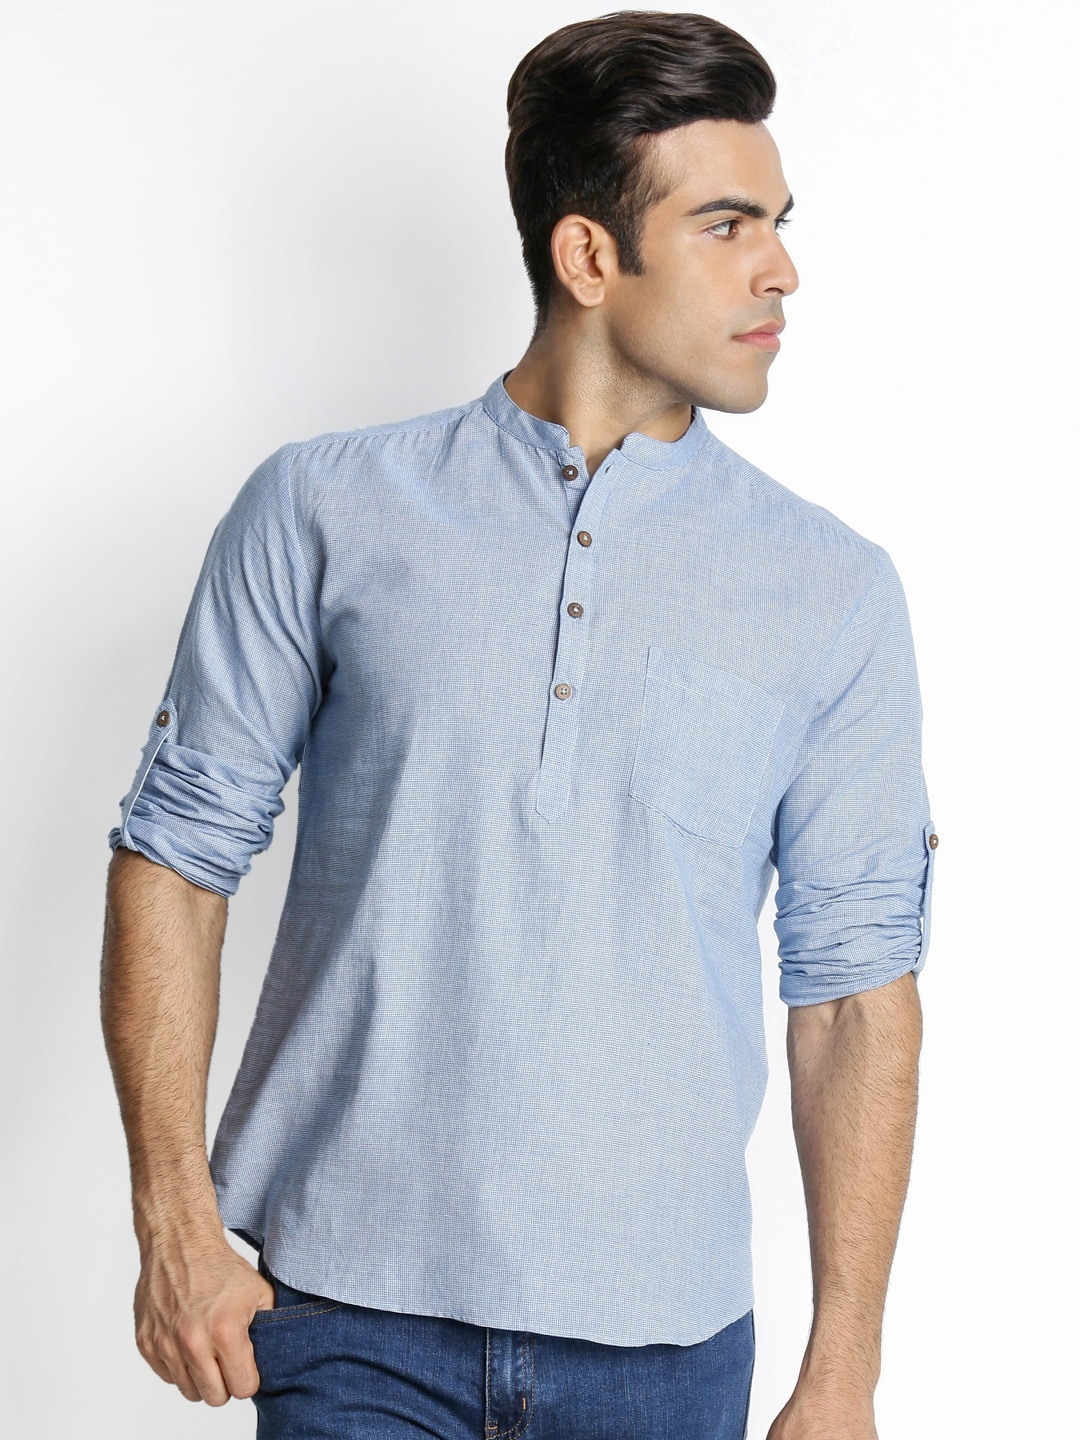 indus route by Pantaloons Men Blue & White Checked Straight Short Kurta